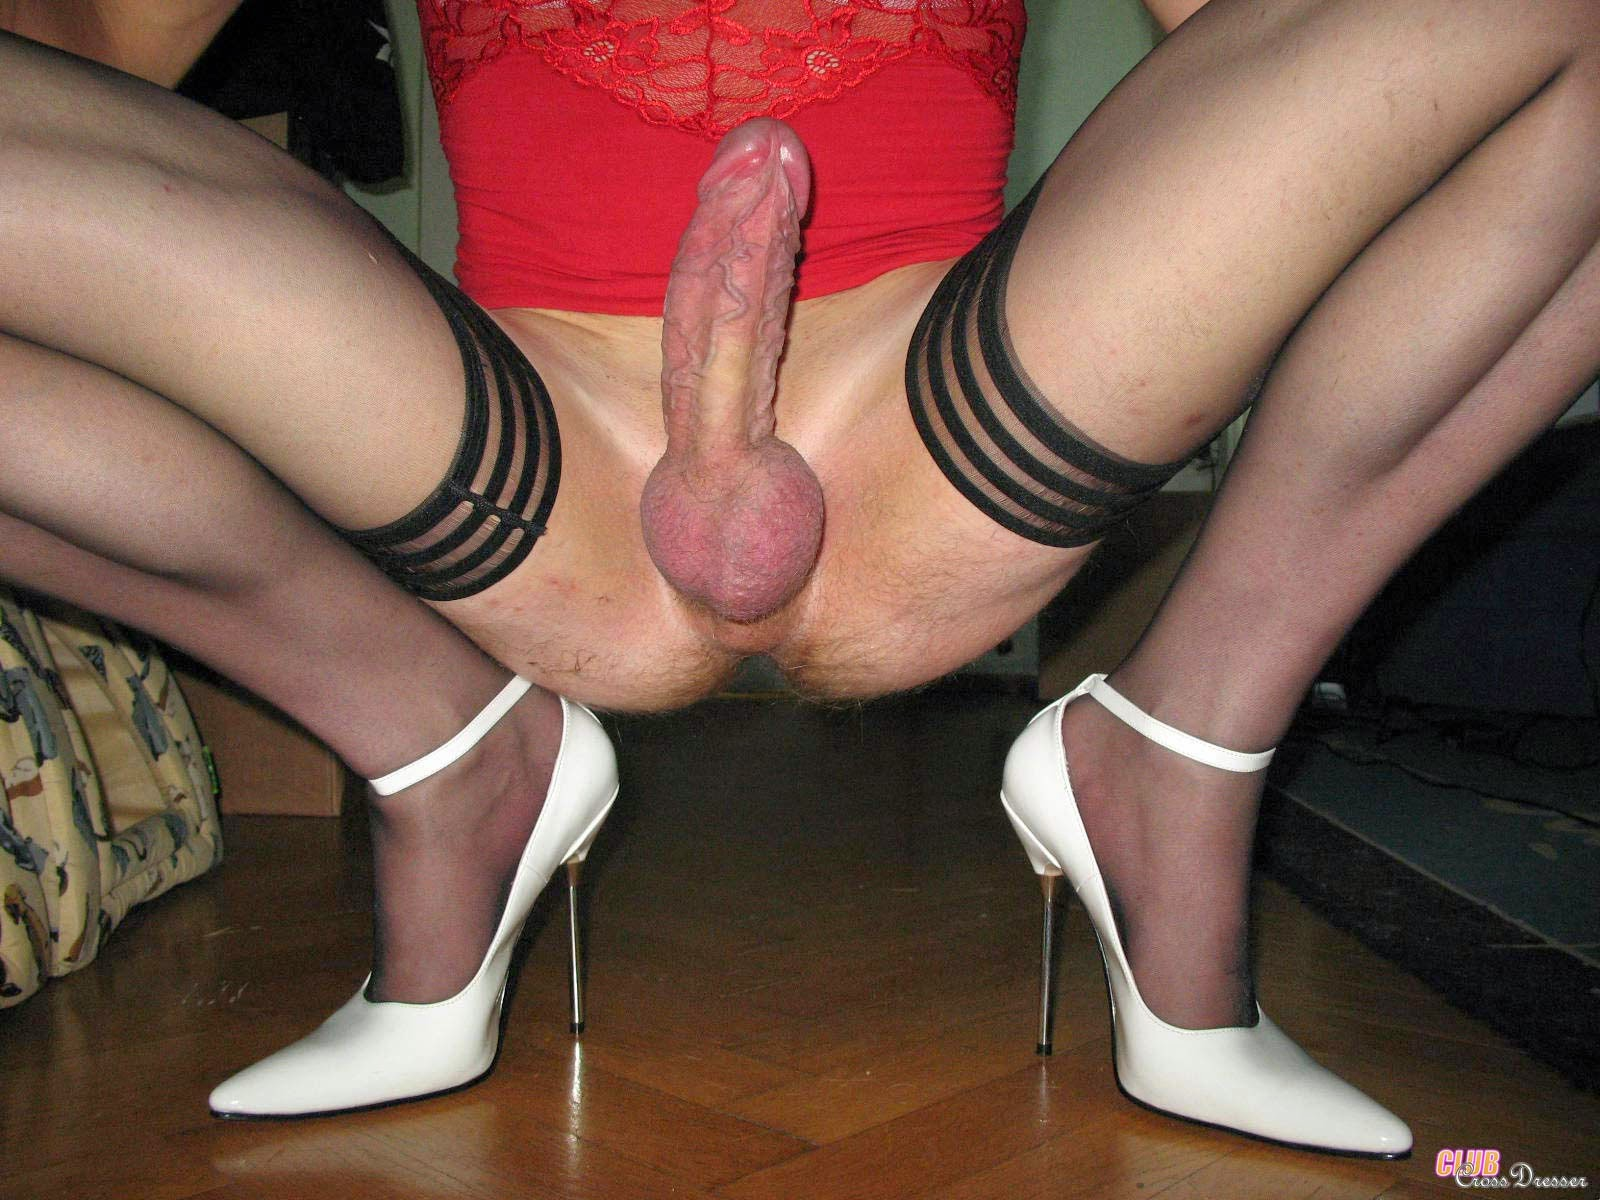 Fucking cock pict crossdresser motherfucker!!